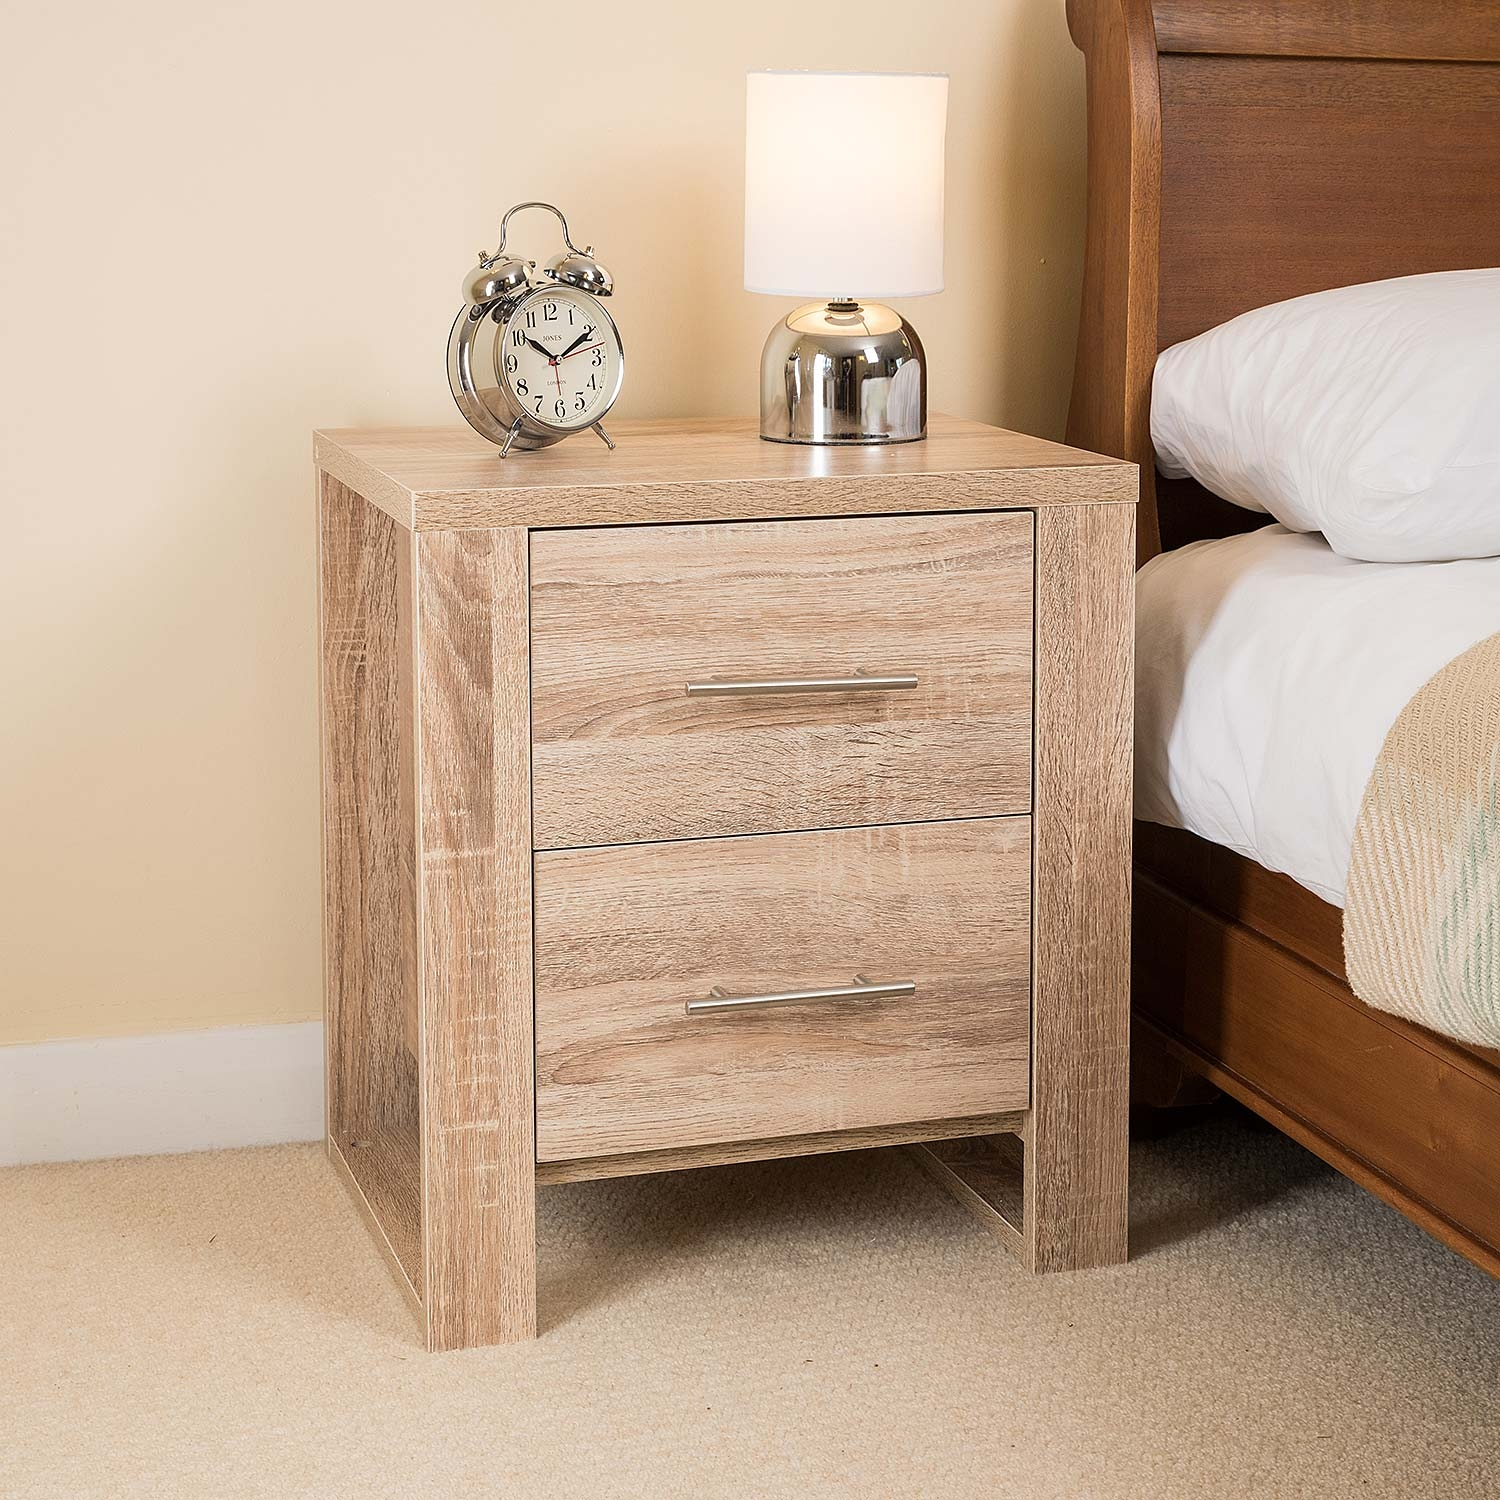 Image of Oak Effect 2 Drawer Bedside Table